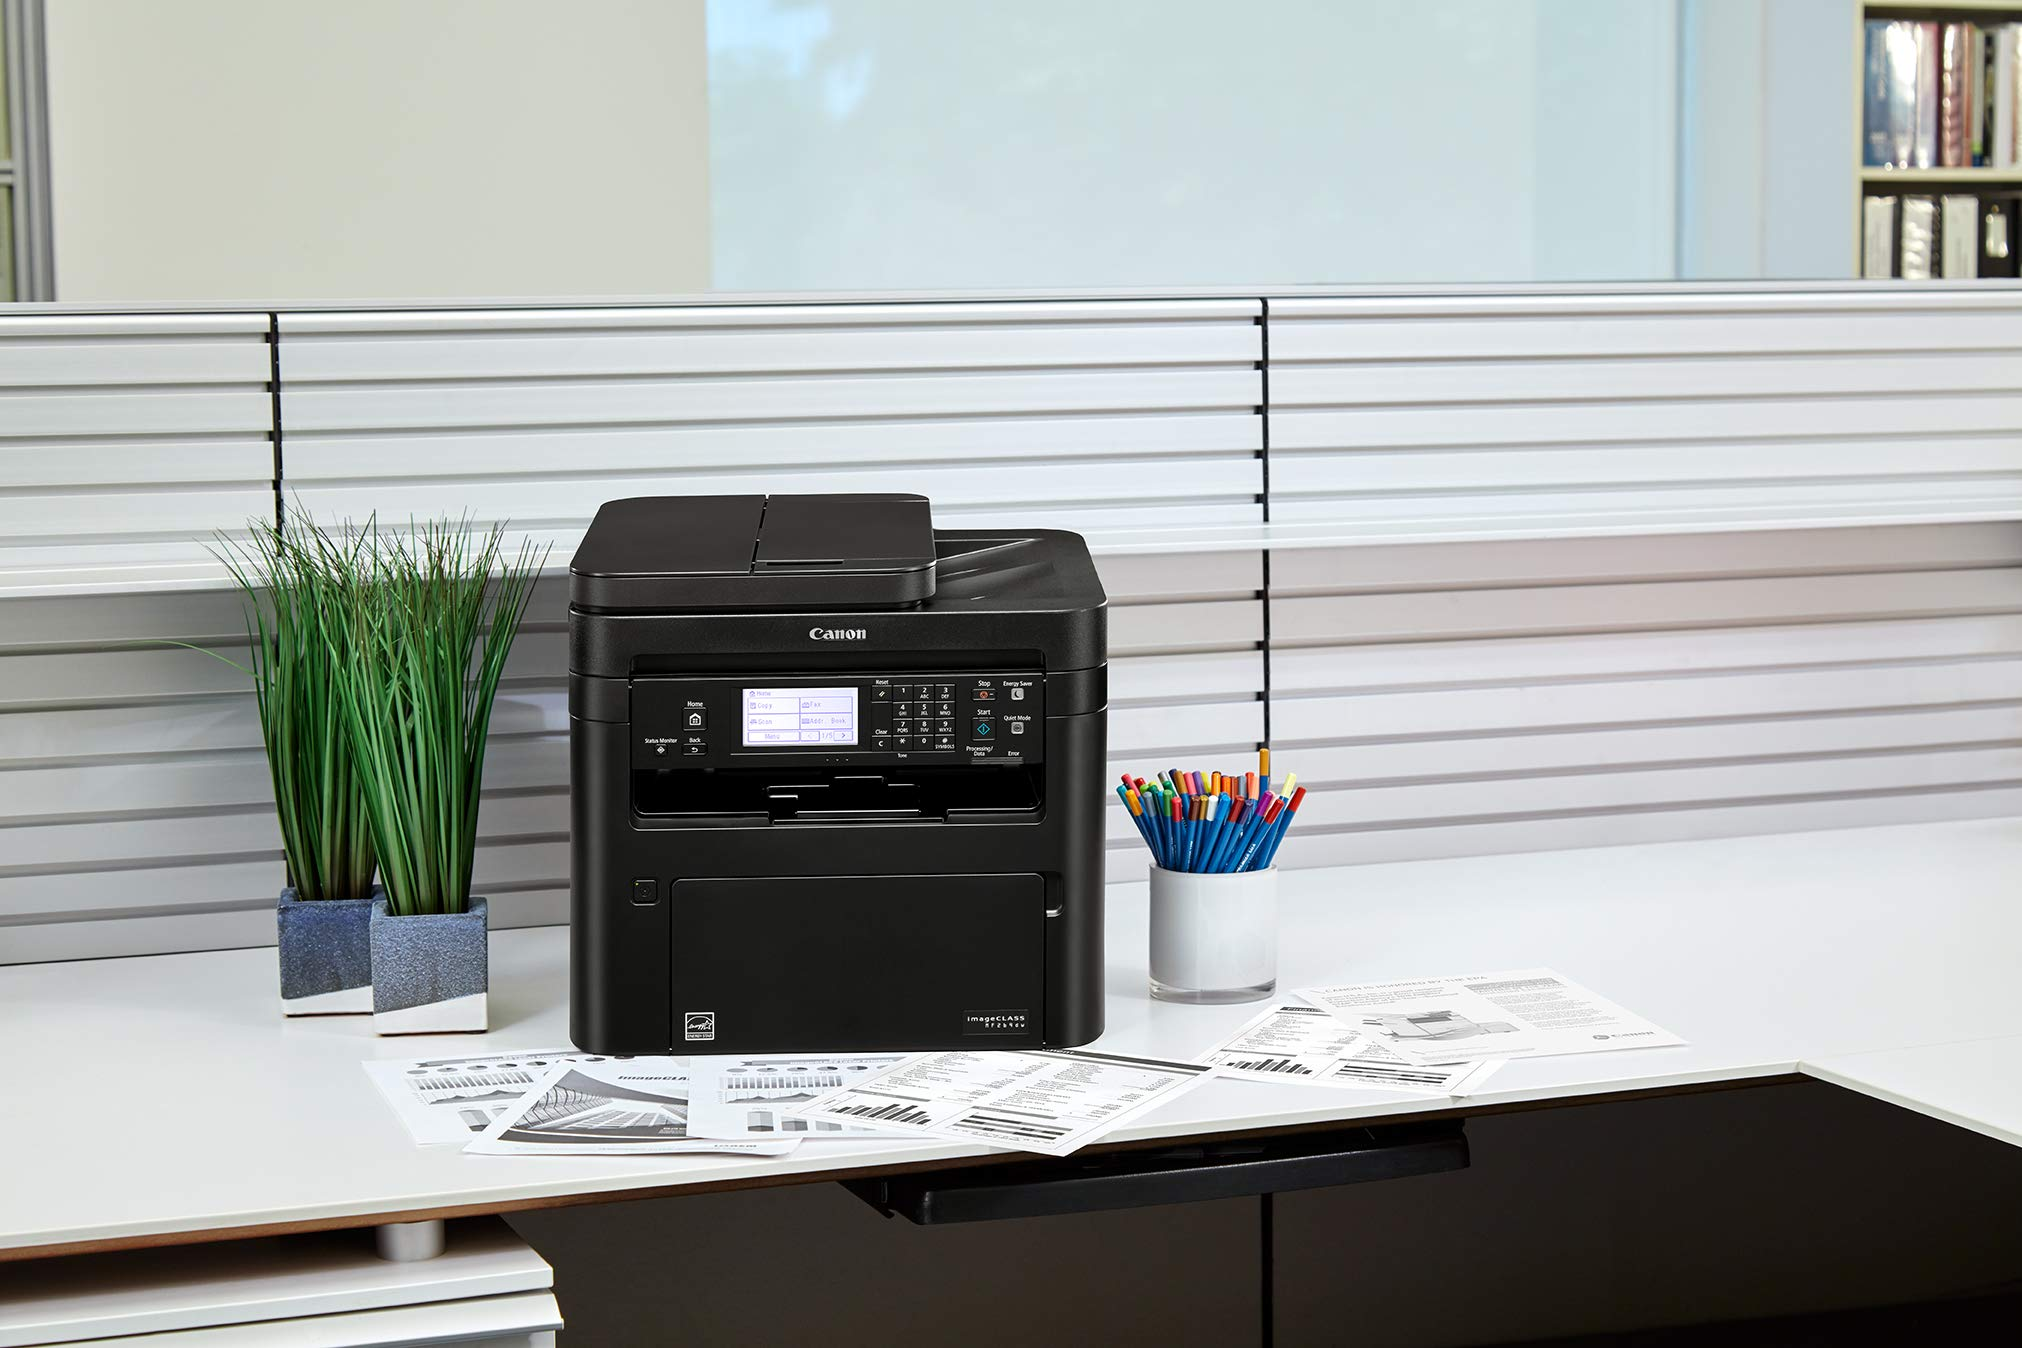 Canon imageCLASS MF269dw VP - All in One, Wireless, Mobile Ready, Duplex Laser Printer (Comes with 2 Year Limited Warranty) by Canon (Image #2)